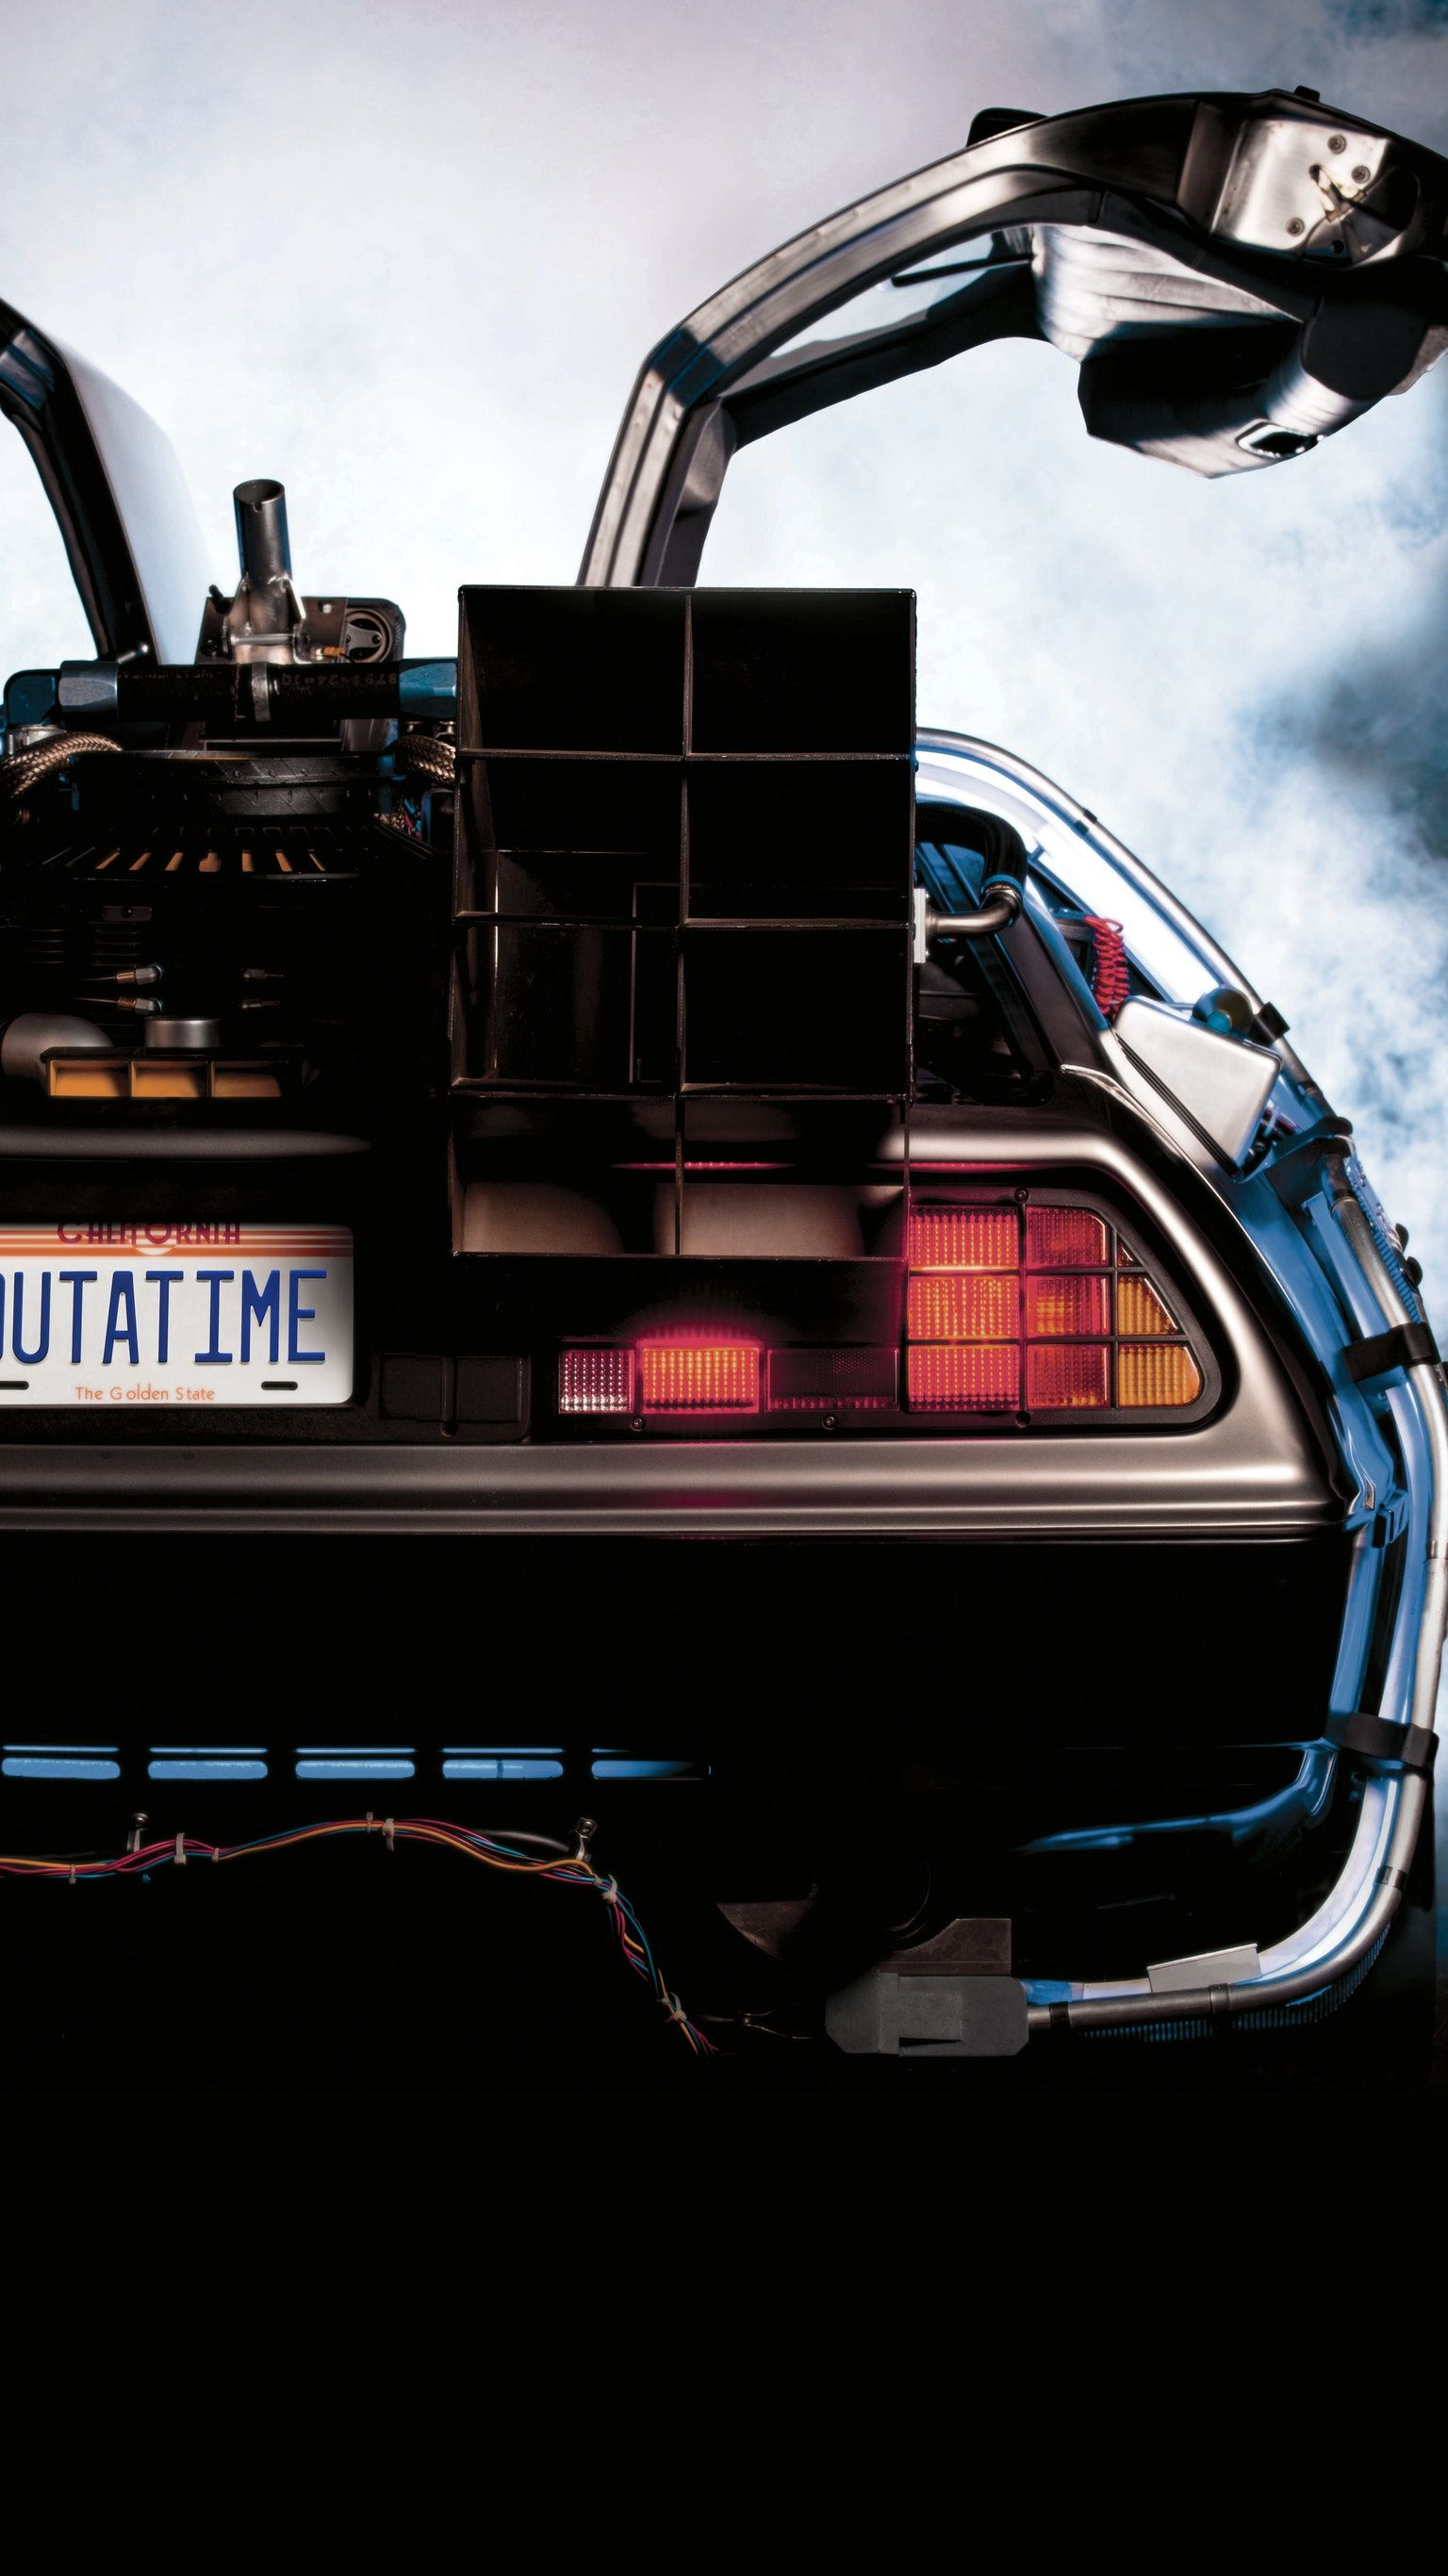 Back To The Future 1985 Phone Wallpaper En 2019 Fondos